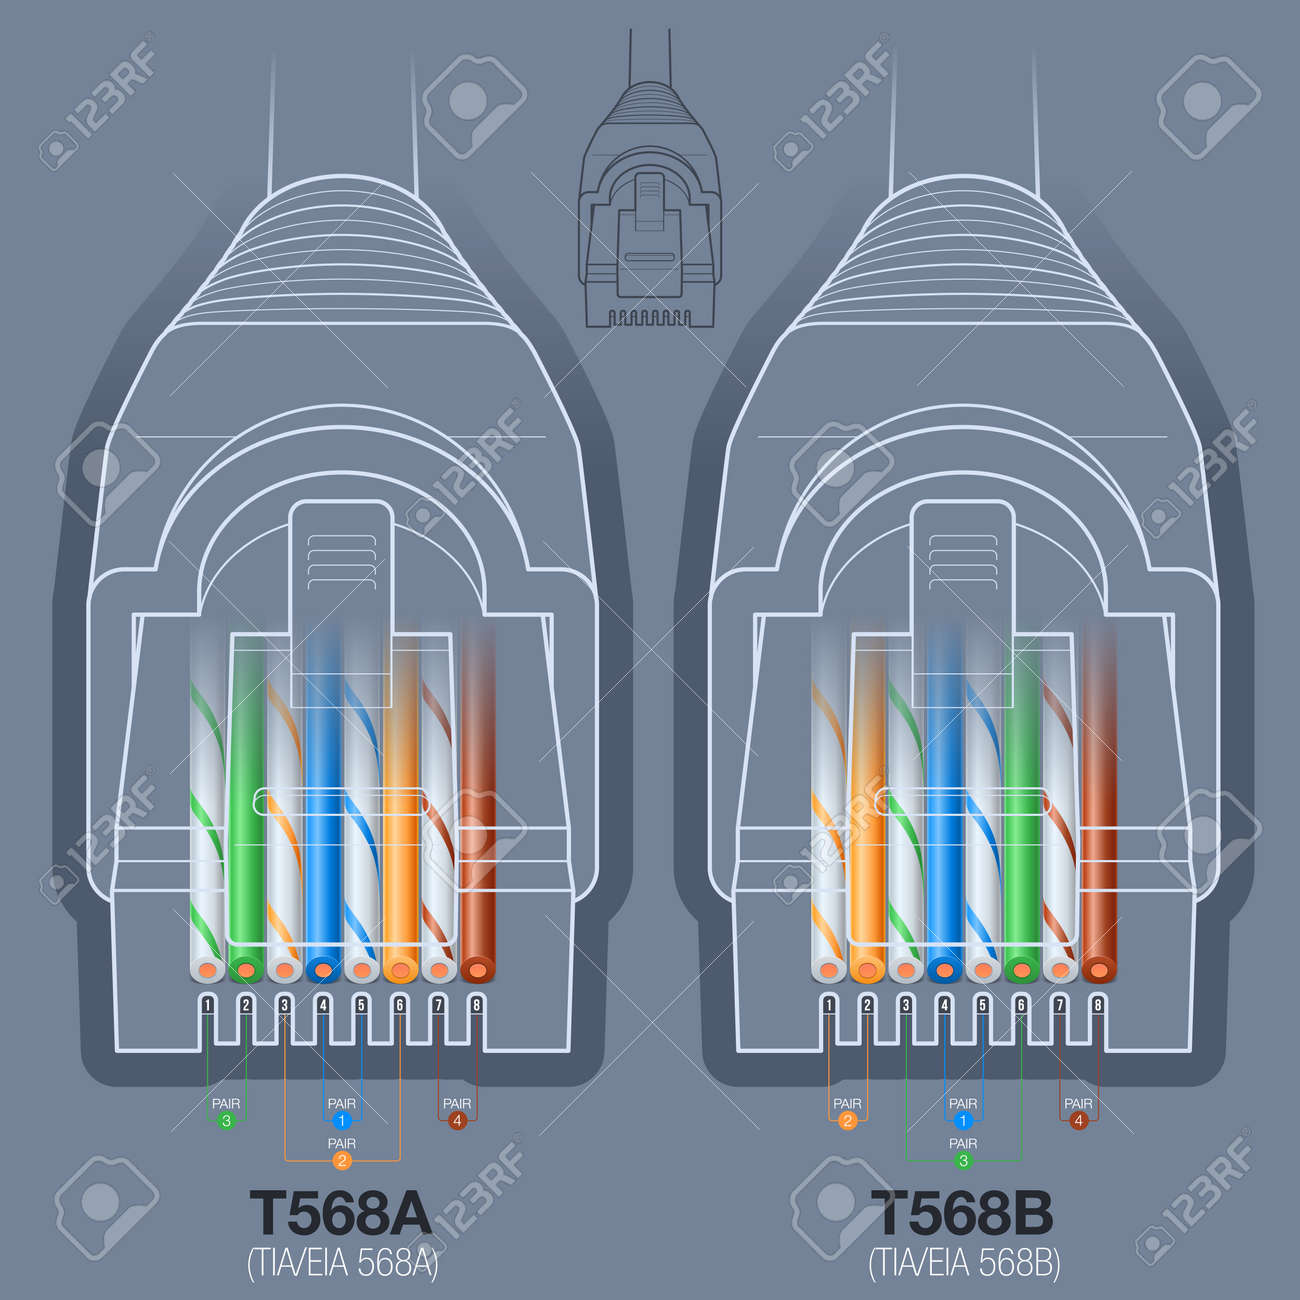 rj45 network cable connector t568a, t568b wiring diagram stock vector -  45694360